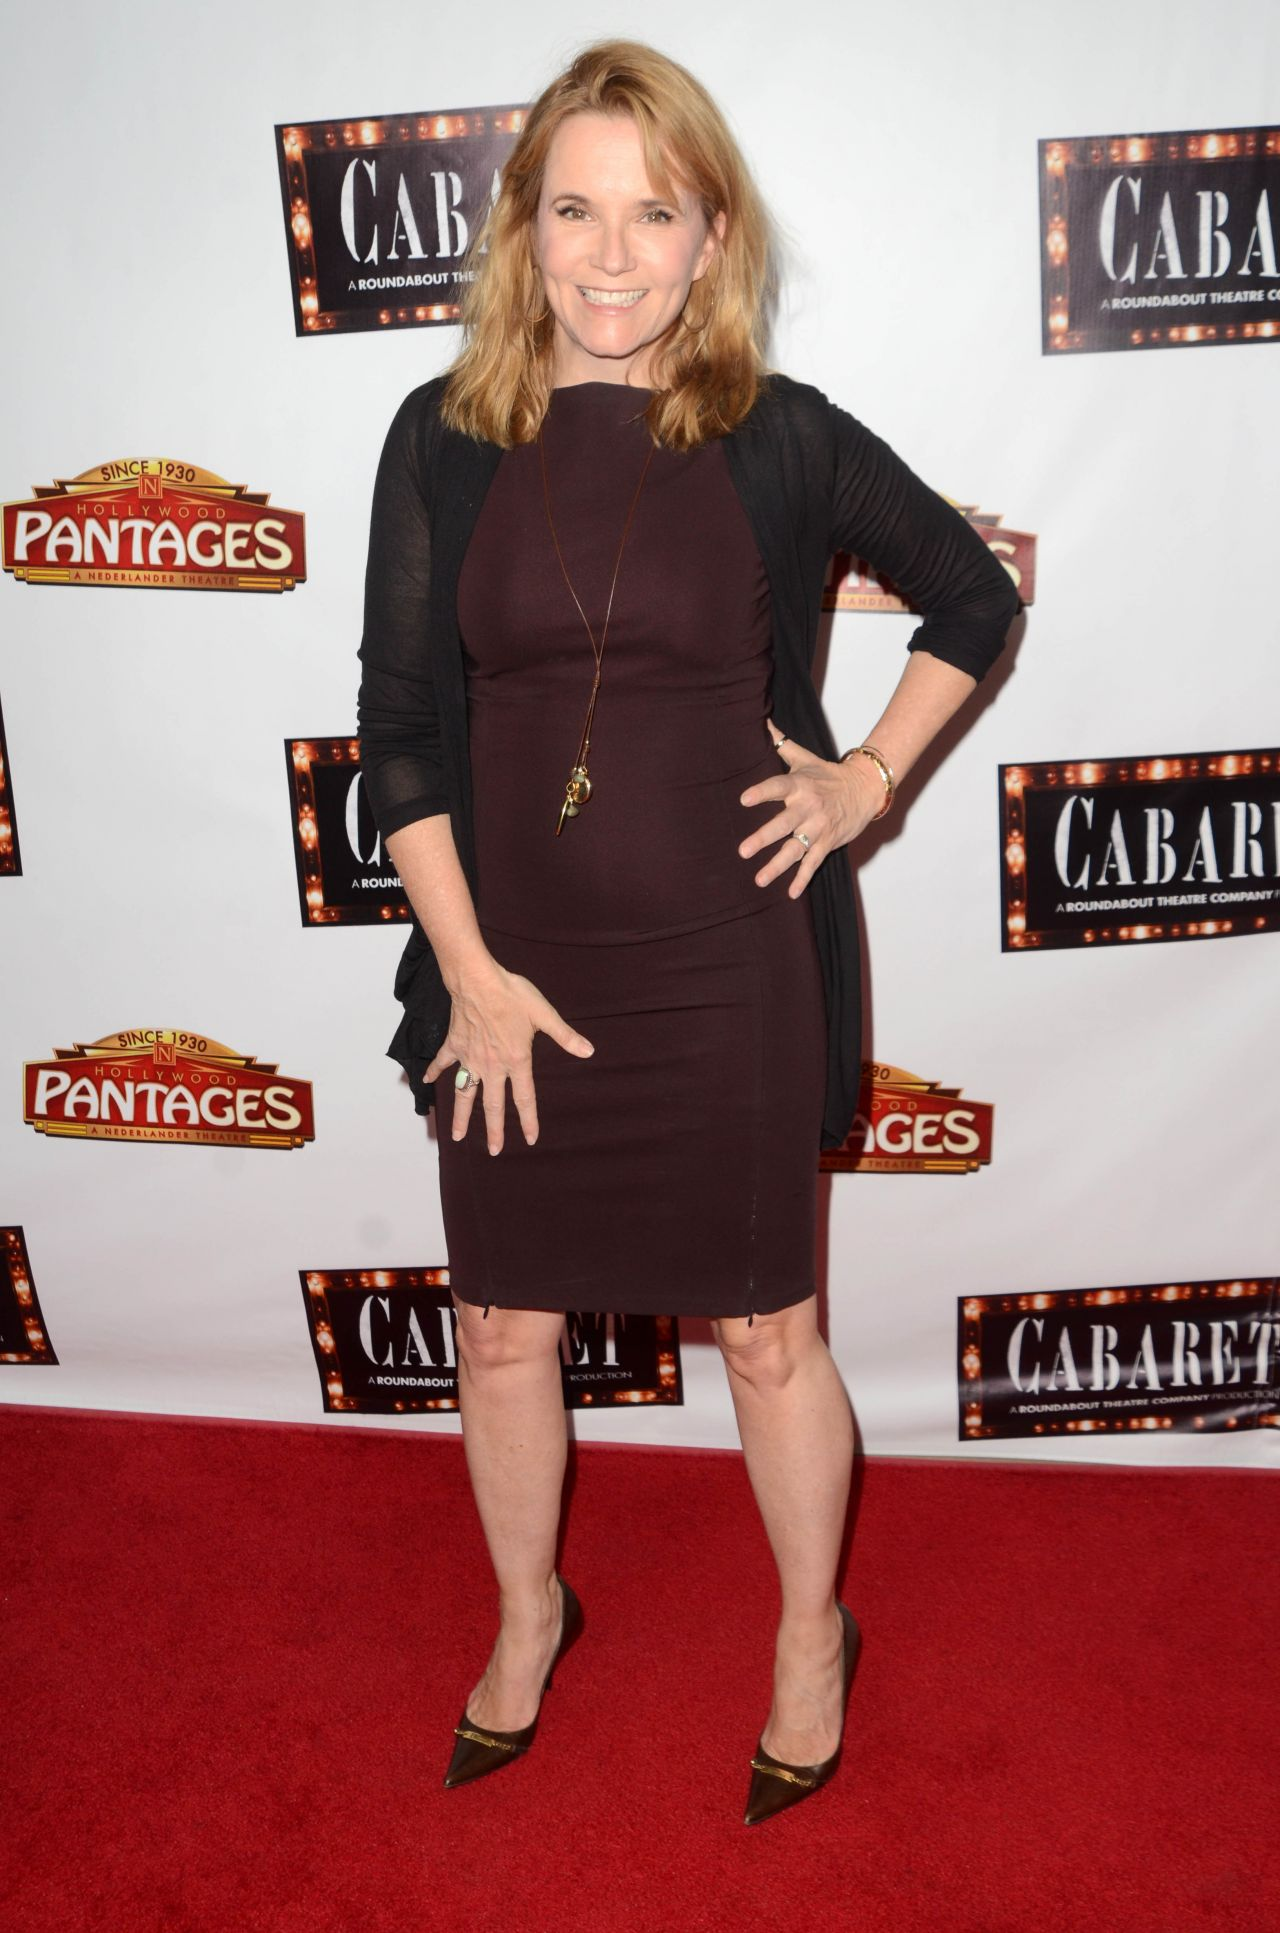 Lea Thompson Opening Of Cabaret In Hollywood 7 20 2016